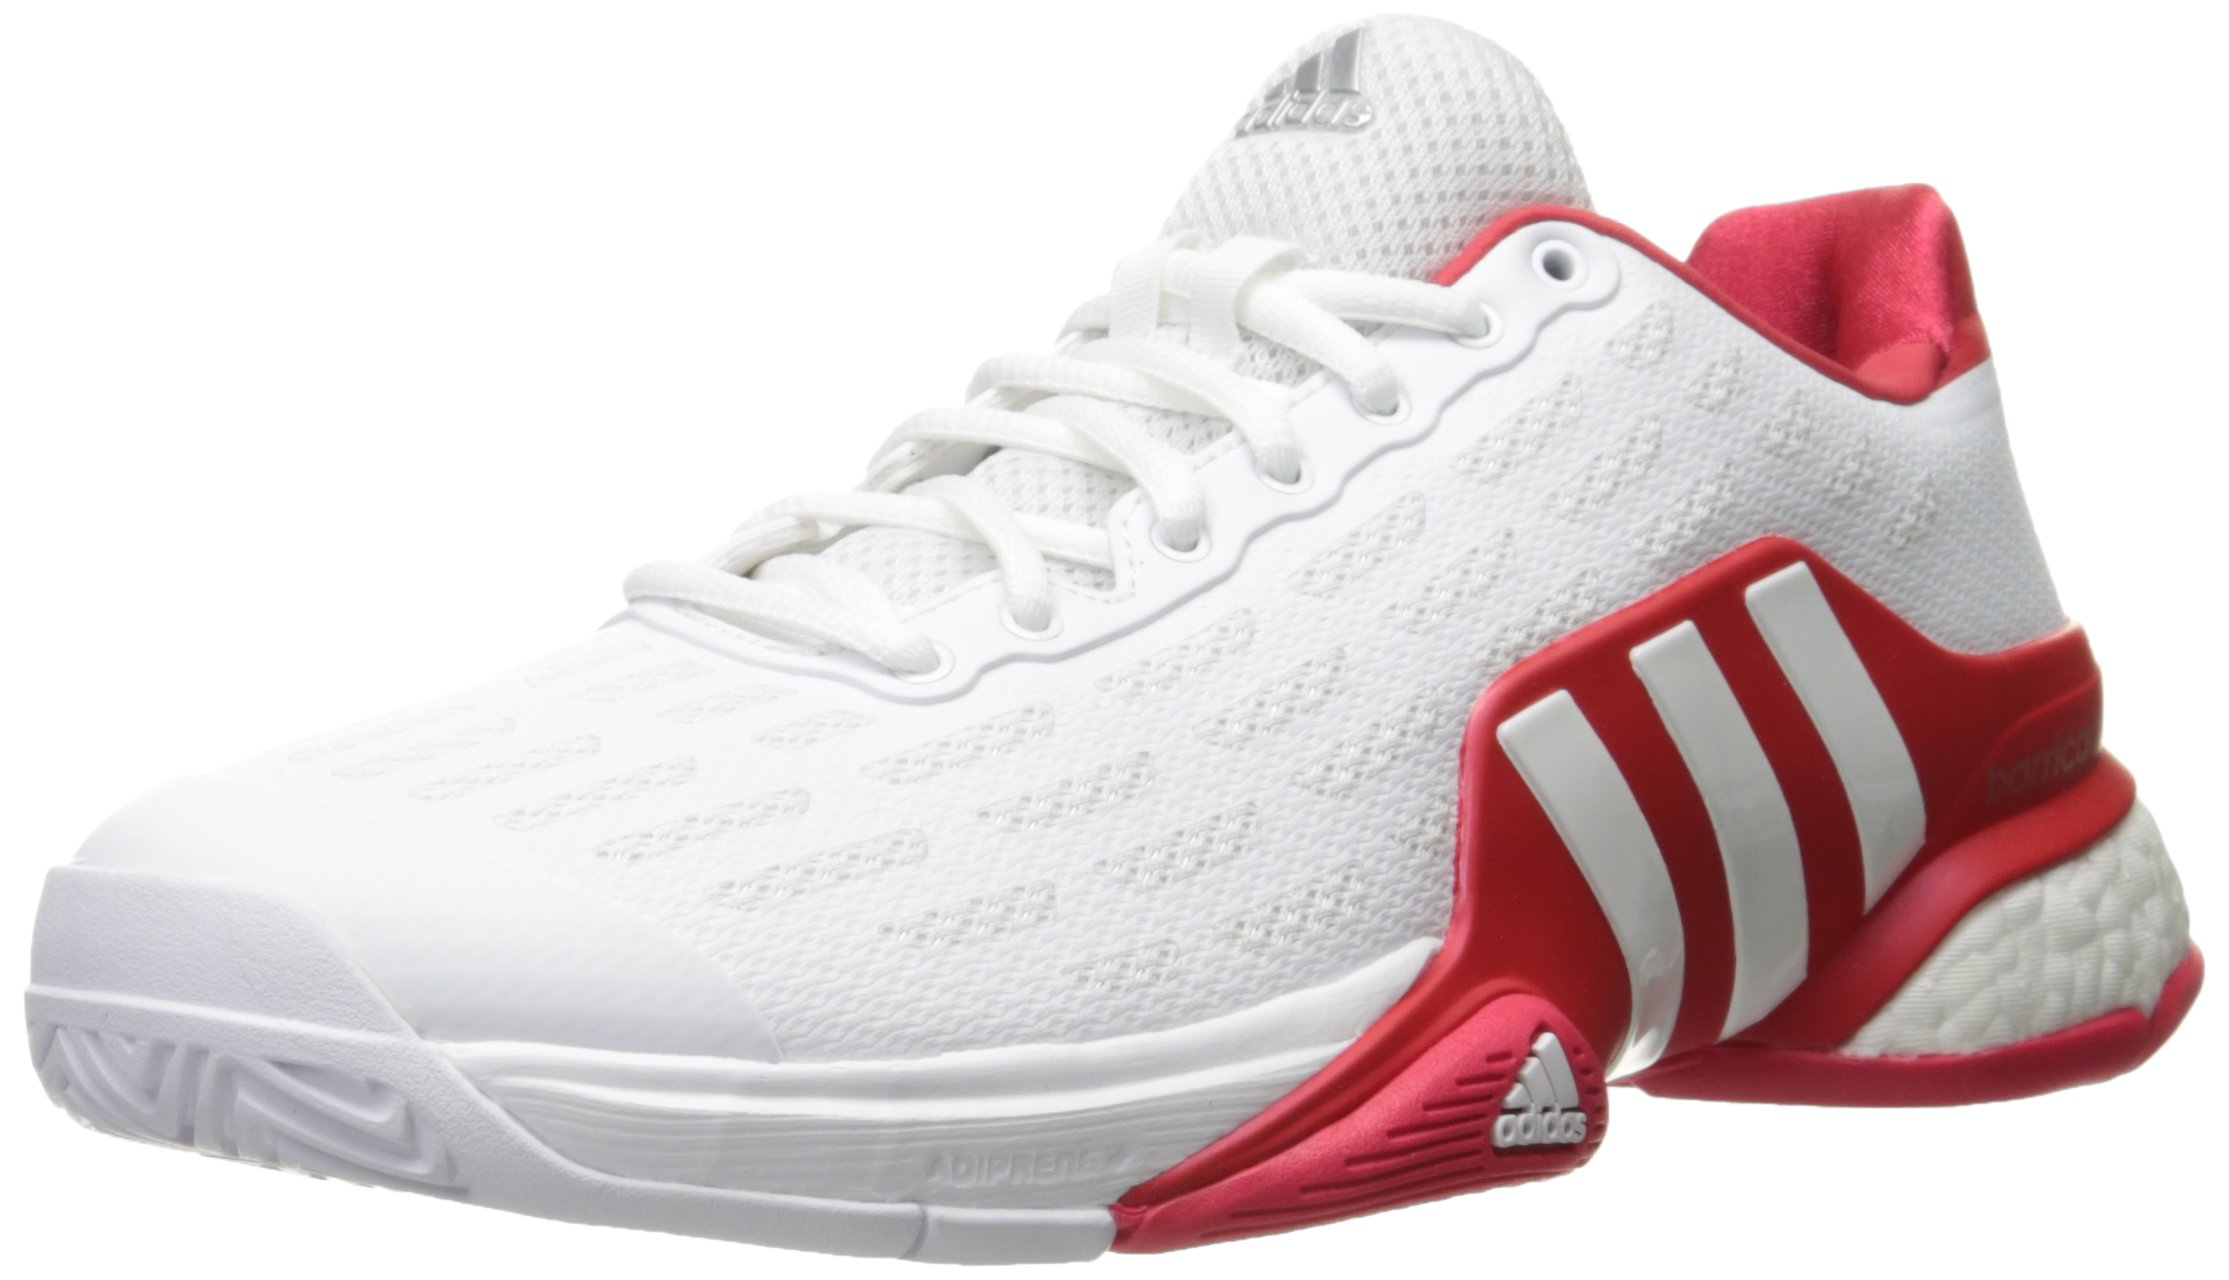 new product f999f 744c7 Galleon - Adidas Men s Barricade 2016 Boost Tennis Shoe, White Ray Red  Fabric, 10.5 M US